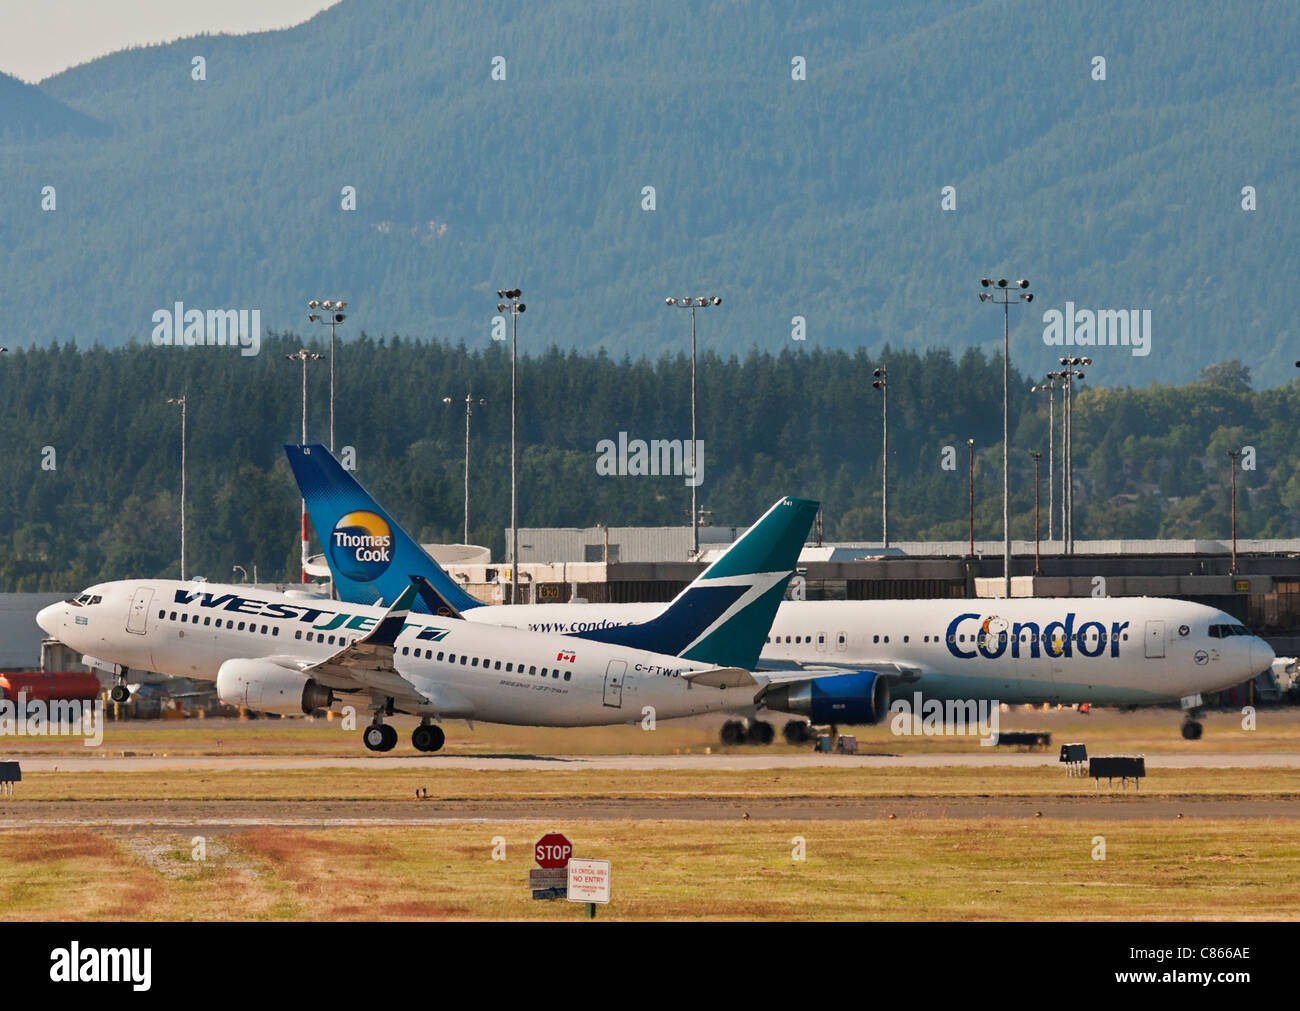 Airliners: a Westjet Boeing 737 takes off as a Condor (Thomas Cook) Boeing 767 taxis to position at Vancouver's - Stock Image